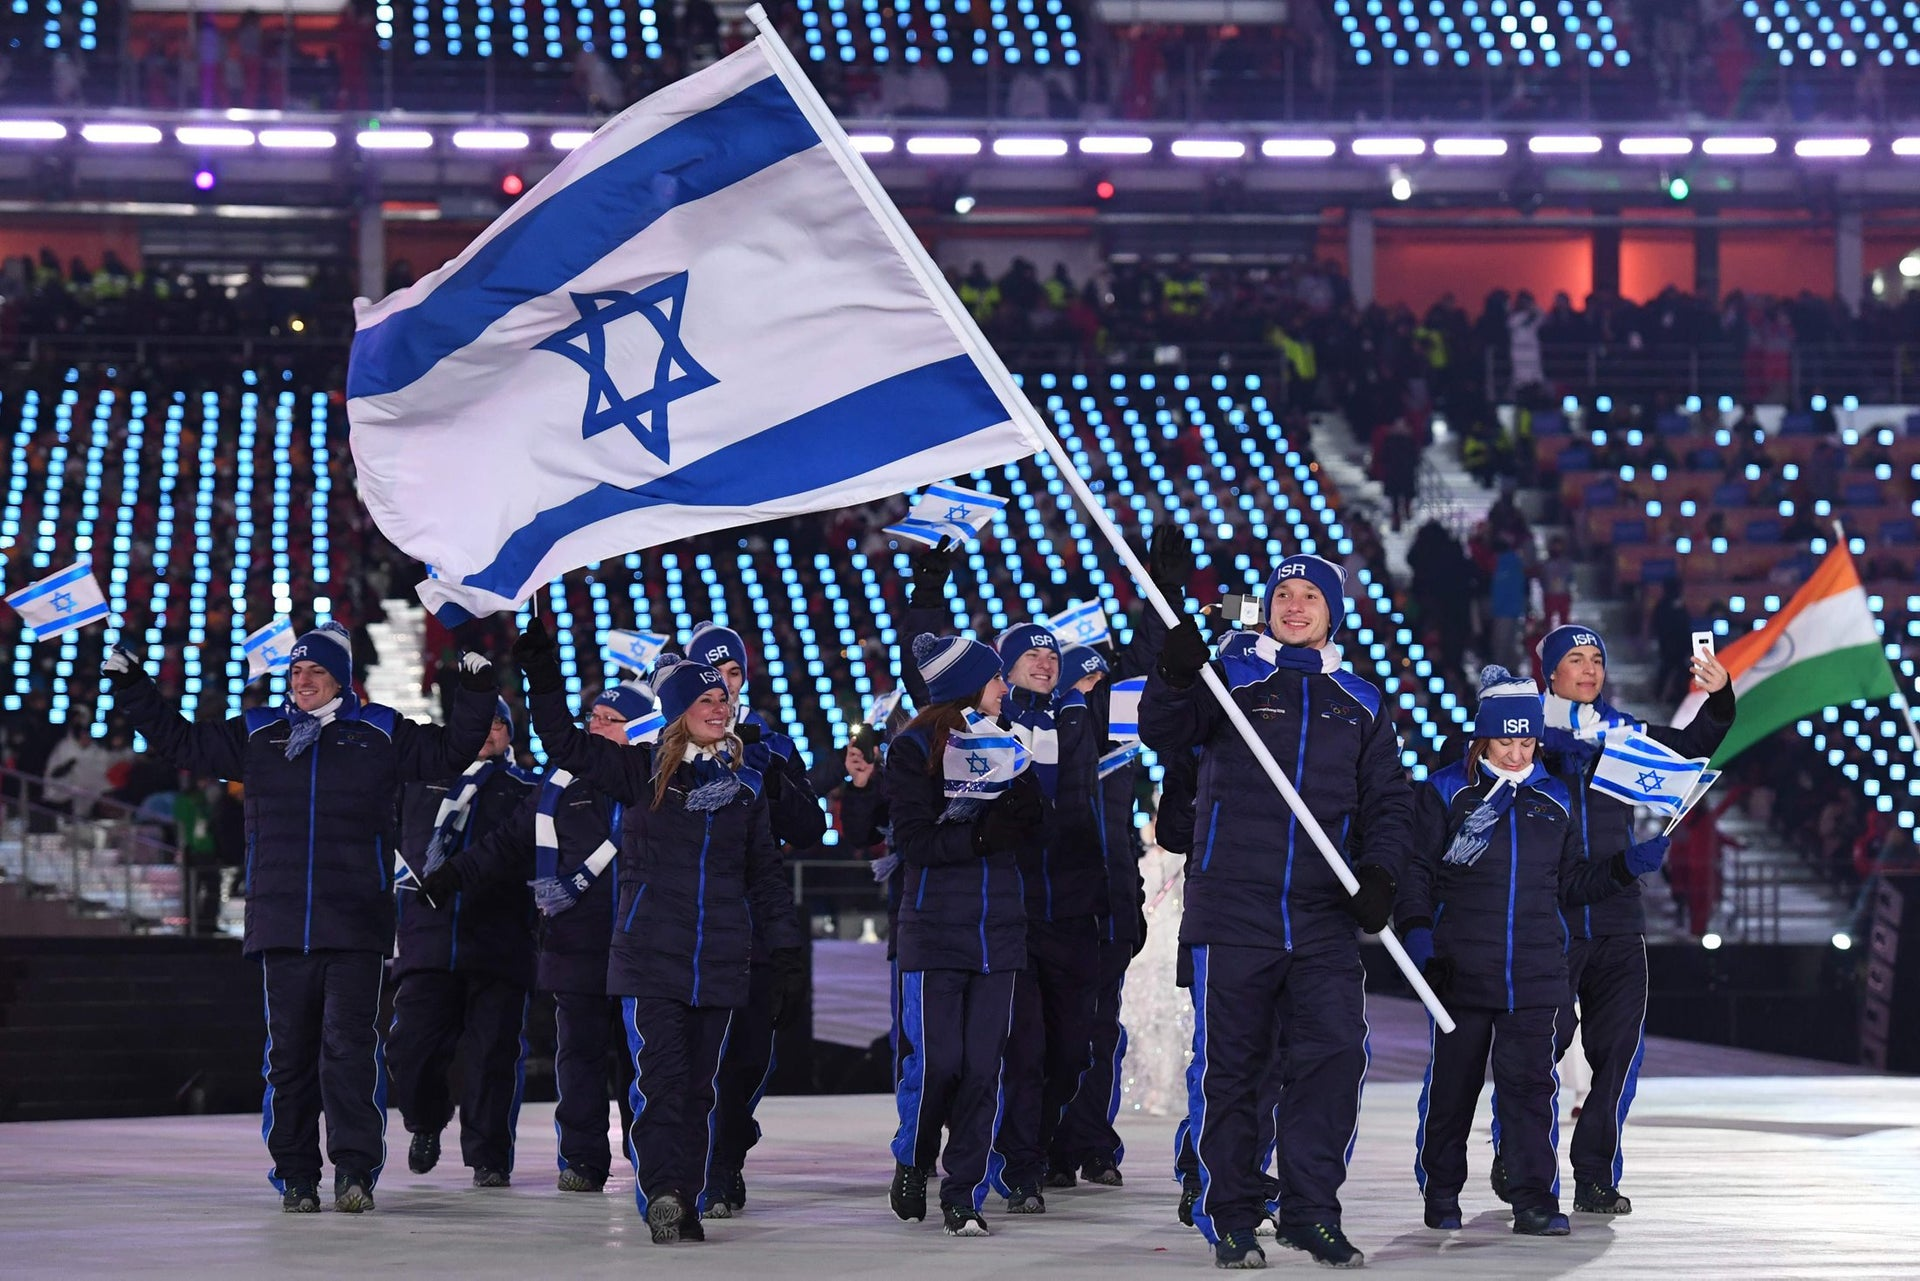 Israel's flagbearer Alexei Bychenko leads his country's delegation during the opening ceremony of the Pyeongchang 2018 Winter Olympic Games at the Pyeongchang Stadium on February 9, 2018.